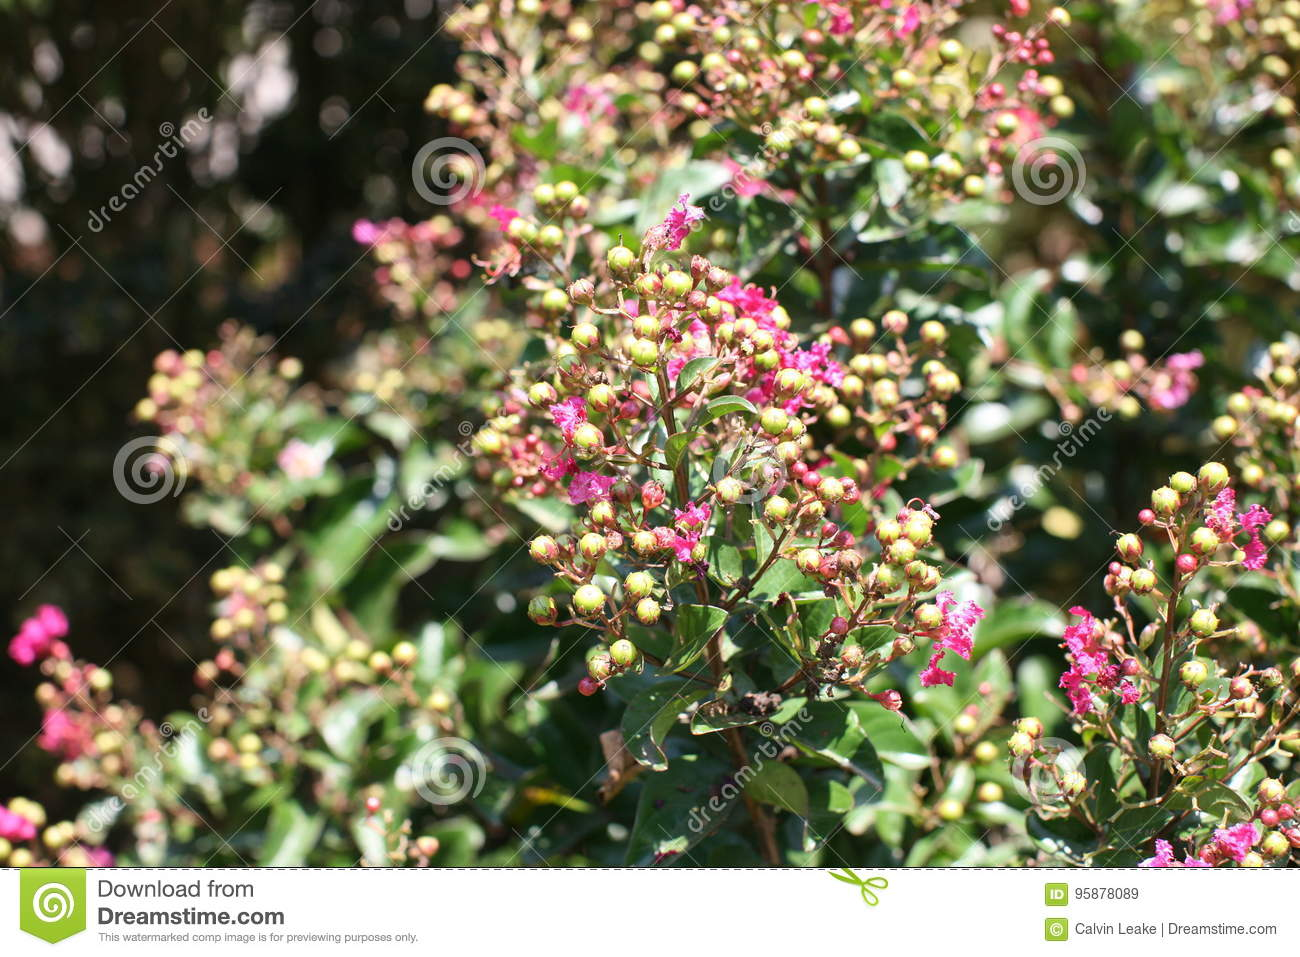 Holly shrub with pink flowers stock image image of plant bush download holly shrub with pink flowers stock image image of plant bush 95878089 mightylinksfo